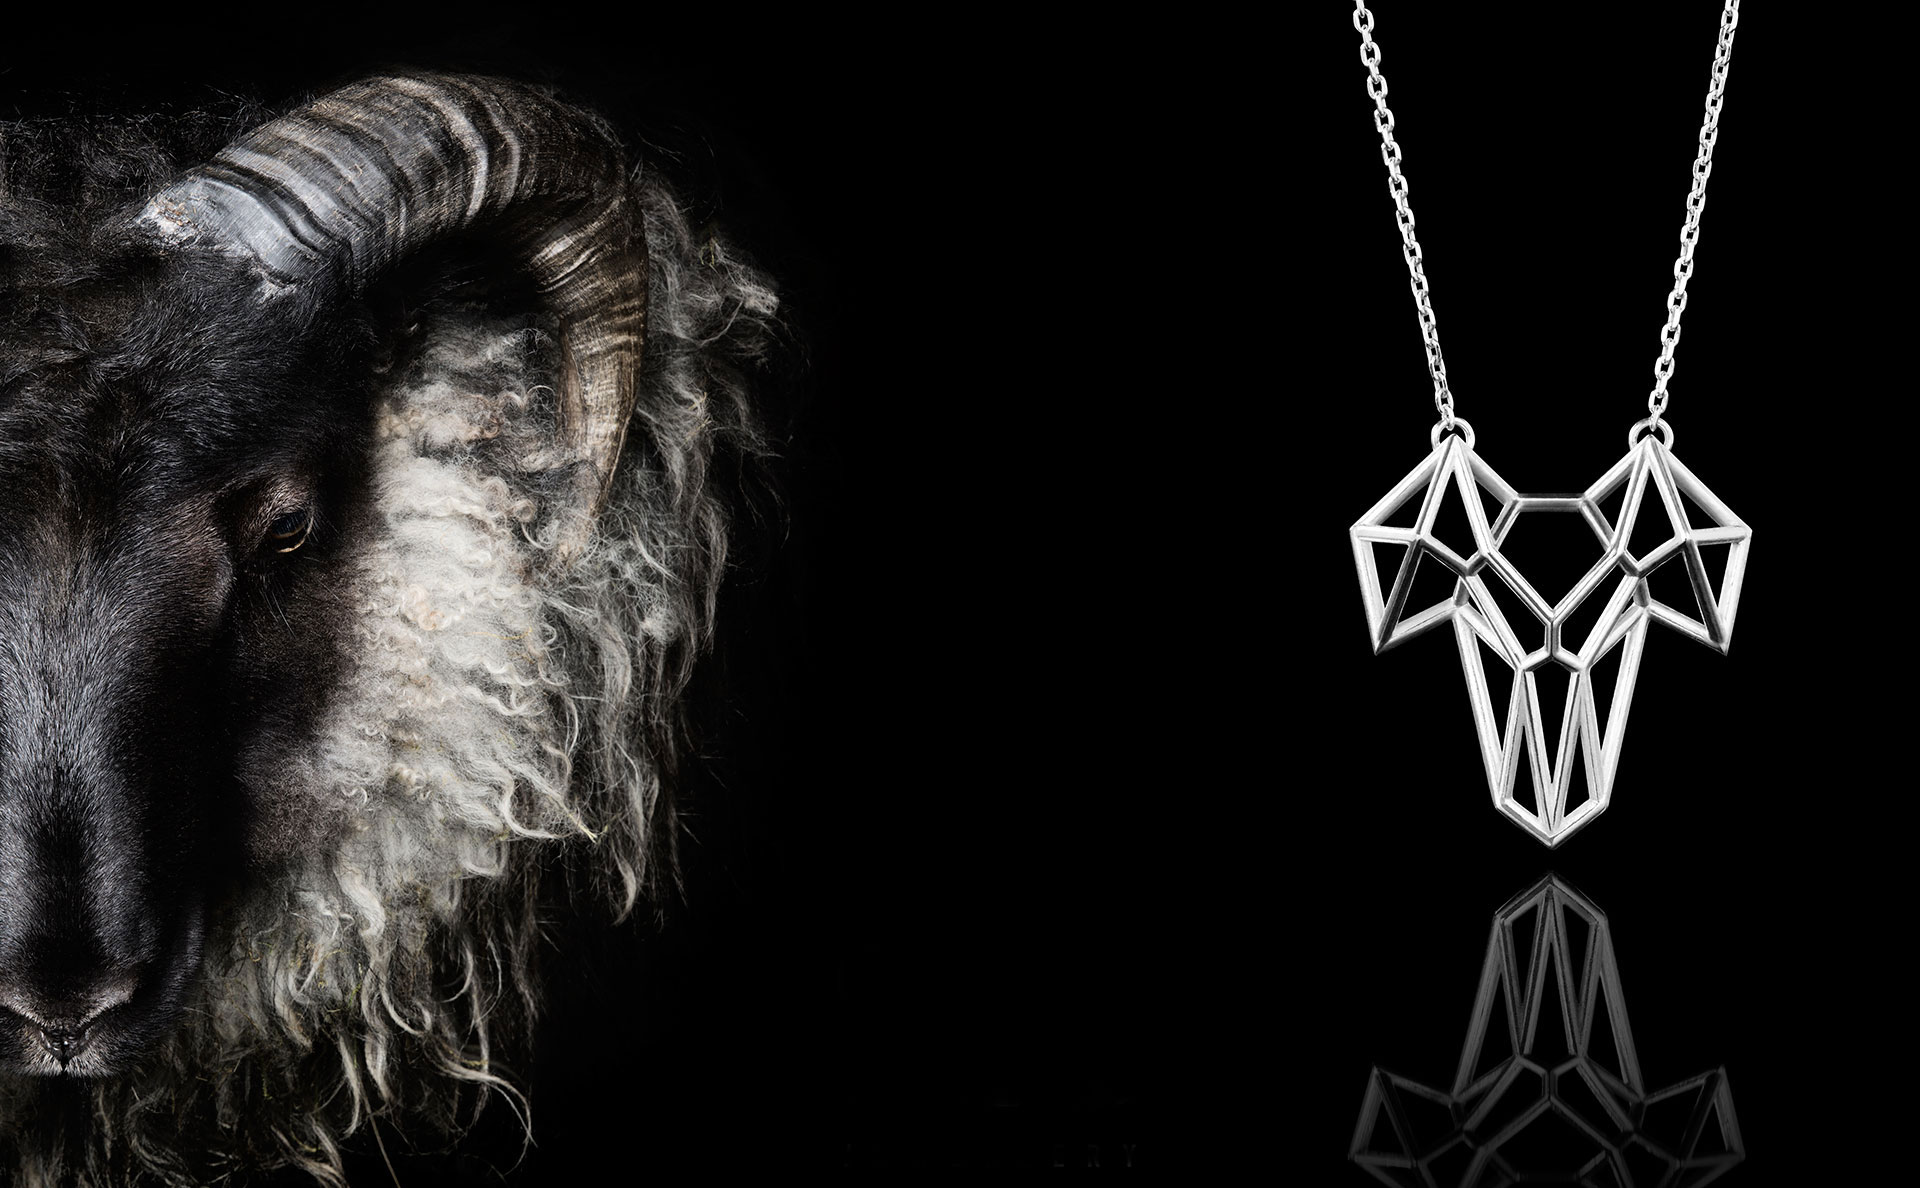 SEB Black Grey Wool Ram Head Face Icelandic Silver Animal Necklace Jewellery Geometric Design Nordic